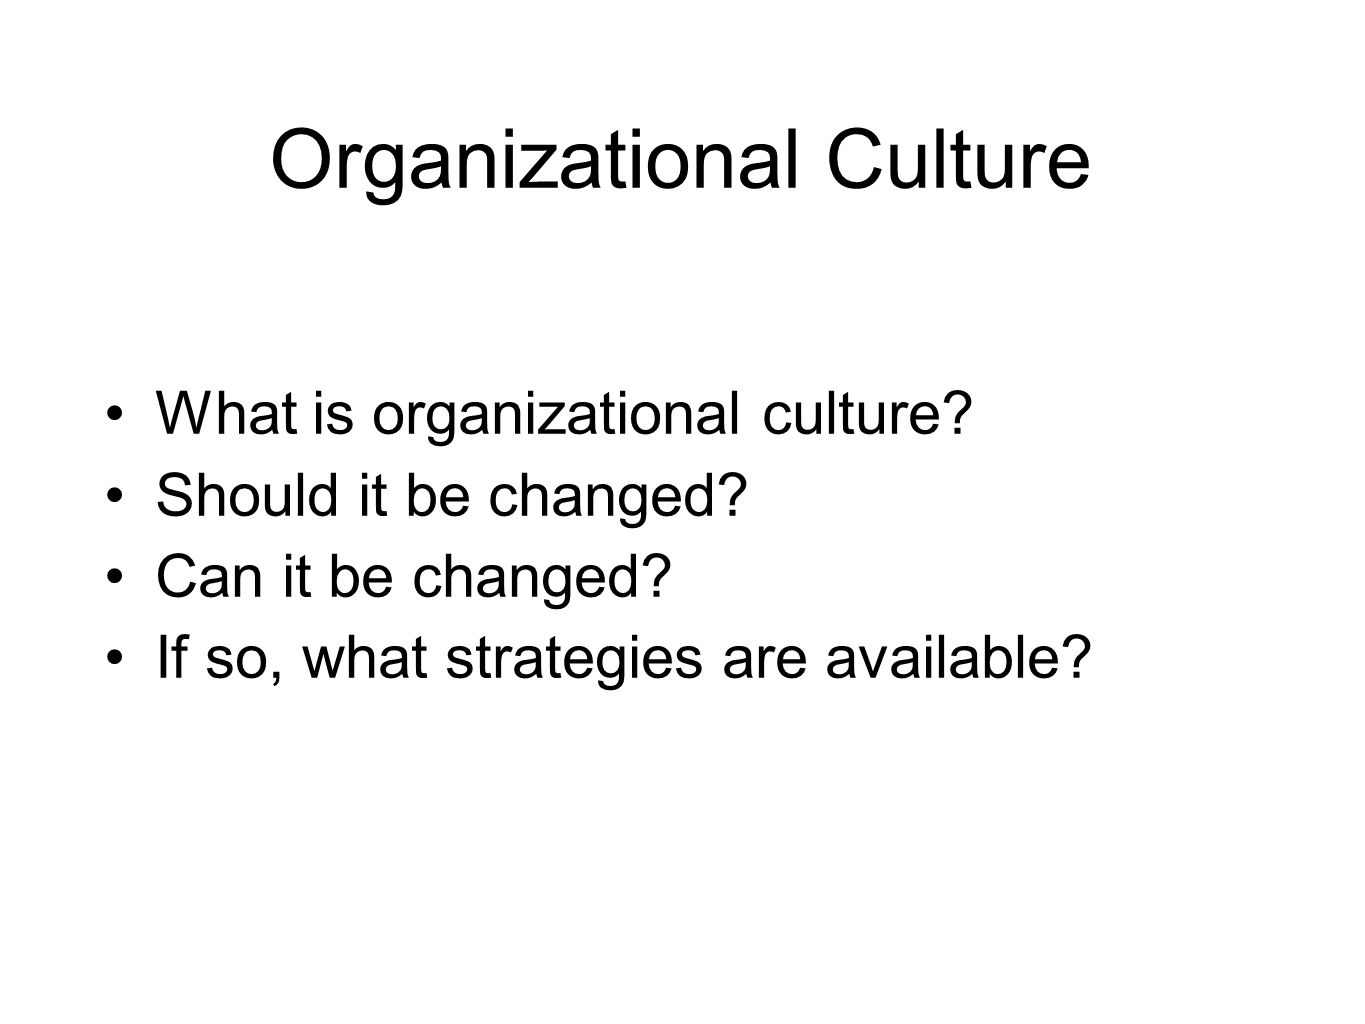 Organizational Culture What is organizational culture? Should it be changed? Can it be changed? If so, what strategies are available?